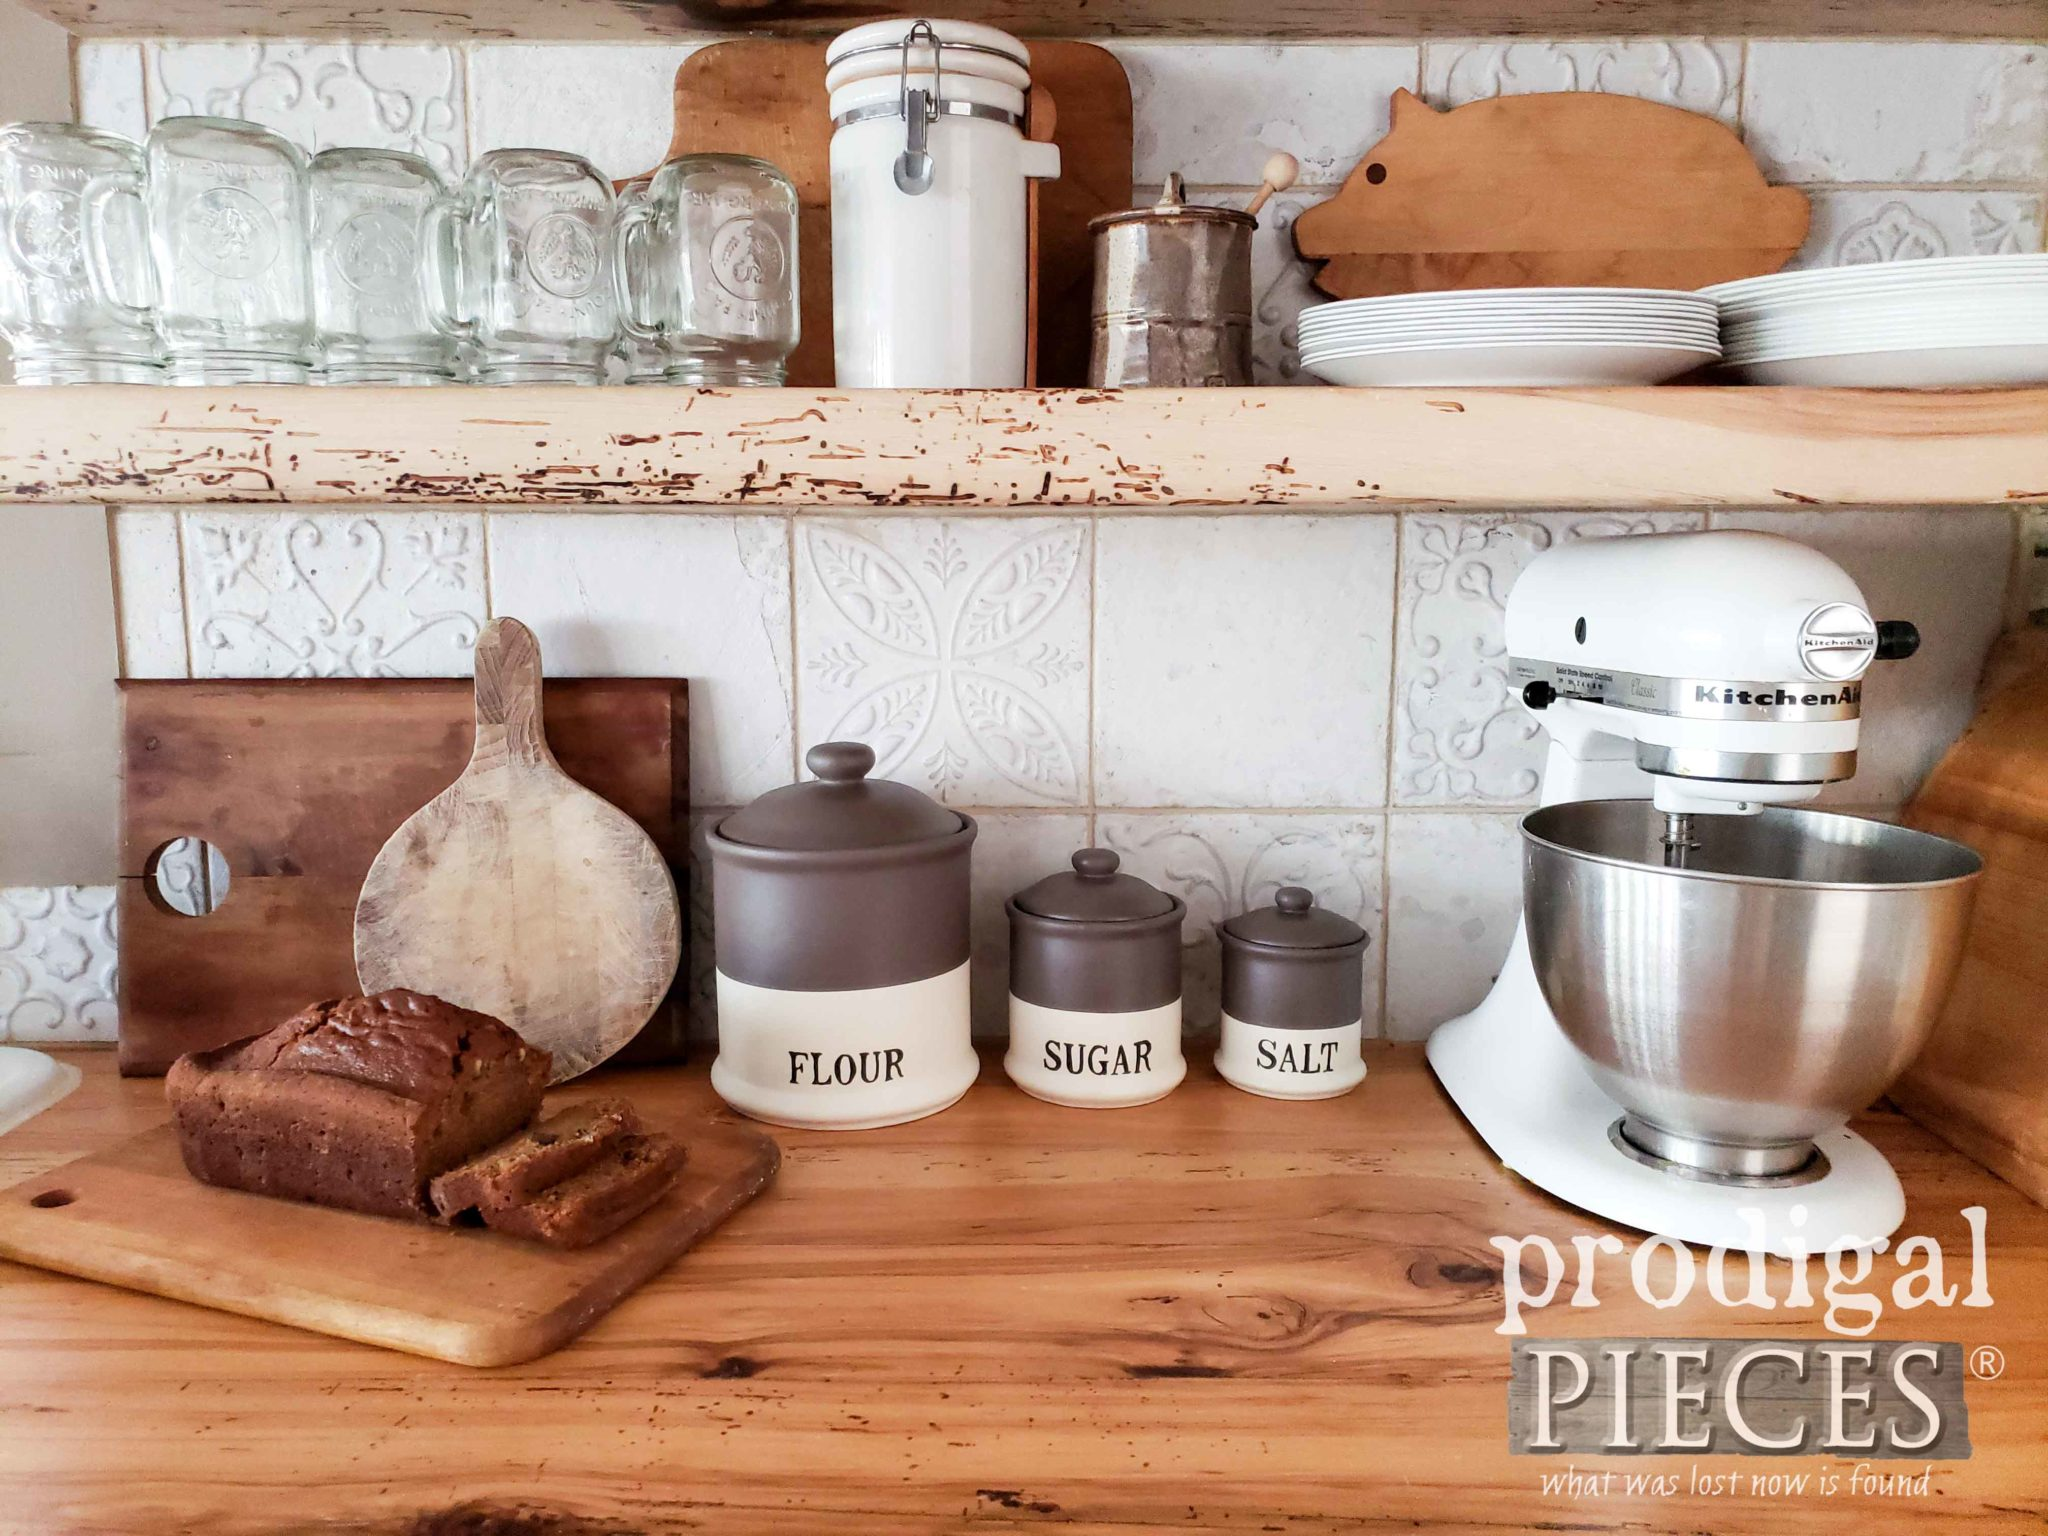 Farmhouse Kitchen Canisters DIY Style - Prodigal Pieces